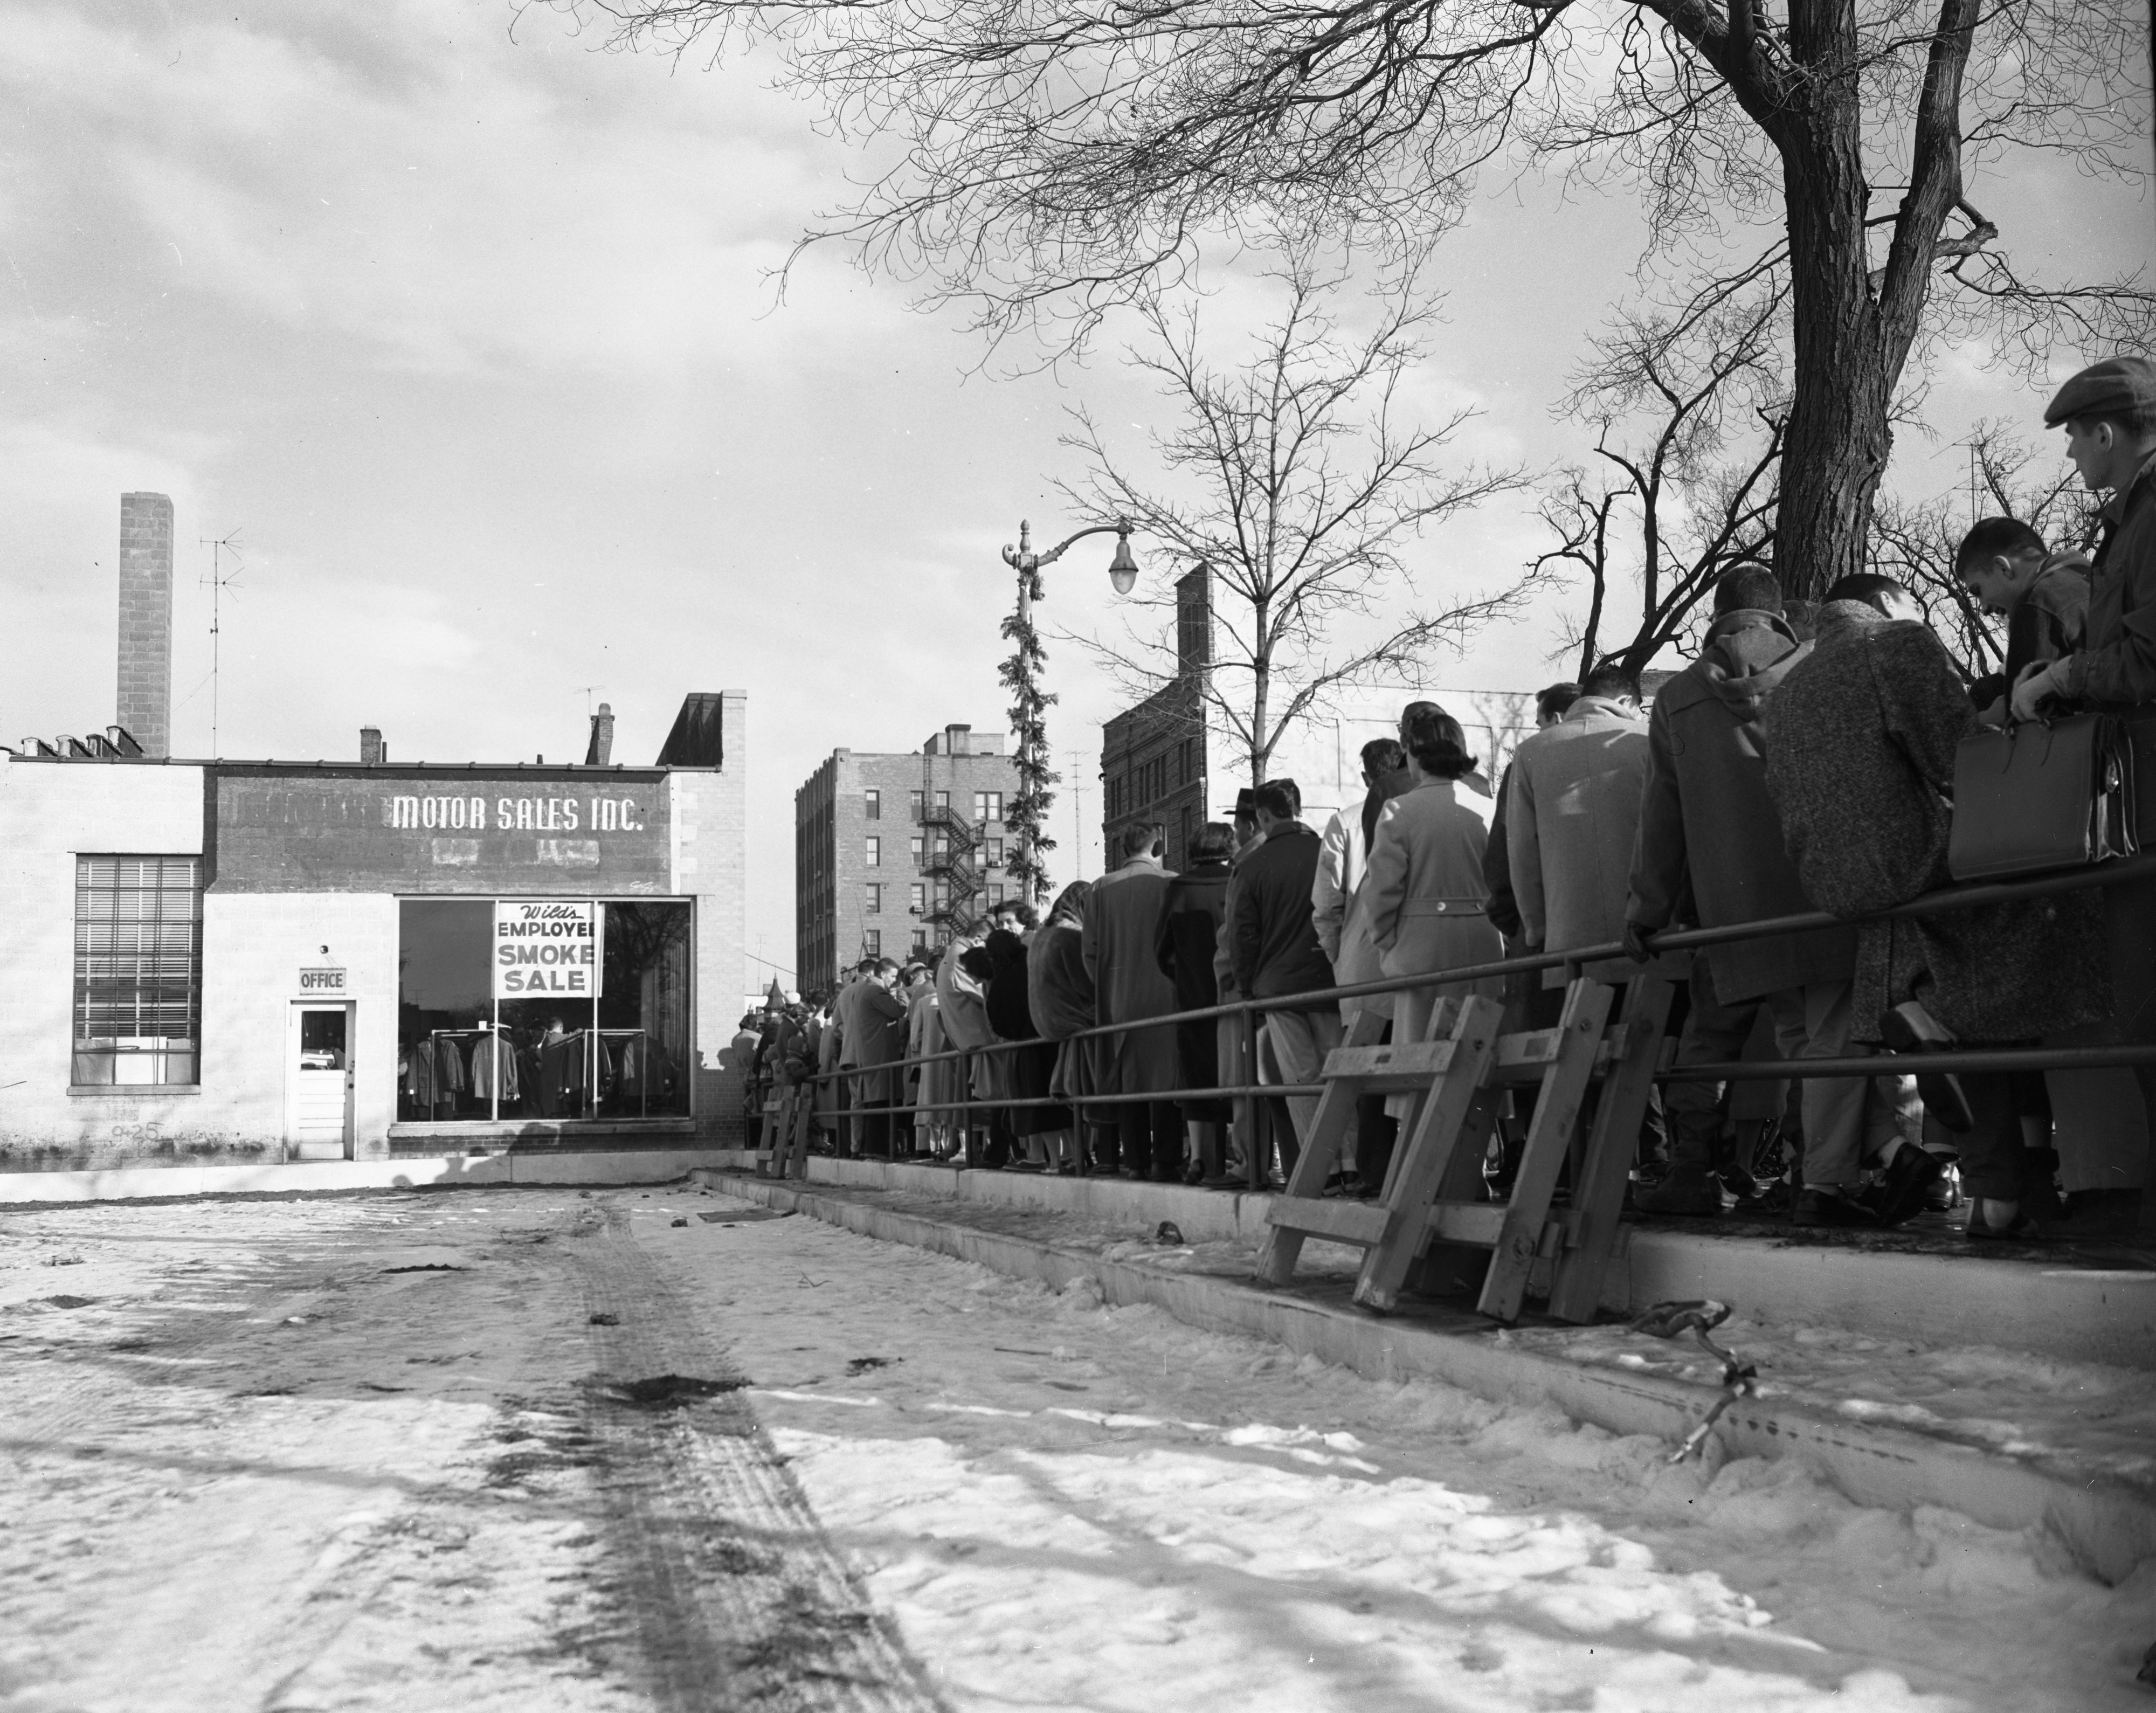 Line for Wild & Col's fire sale, December 1956 image